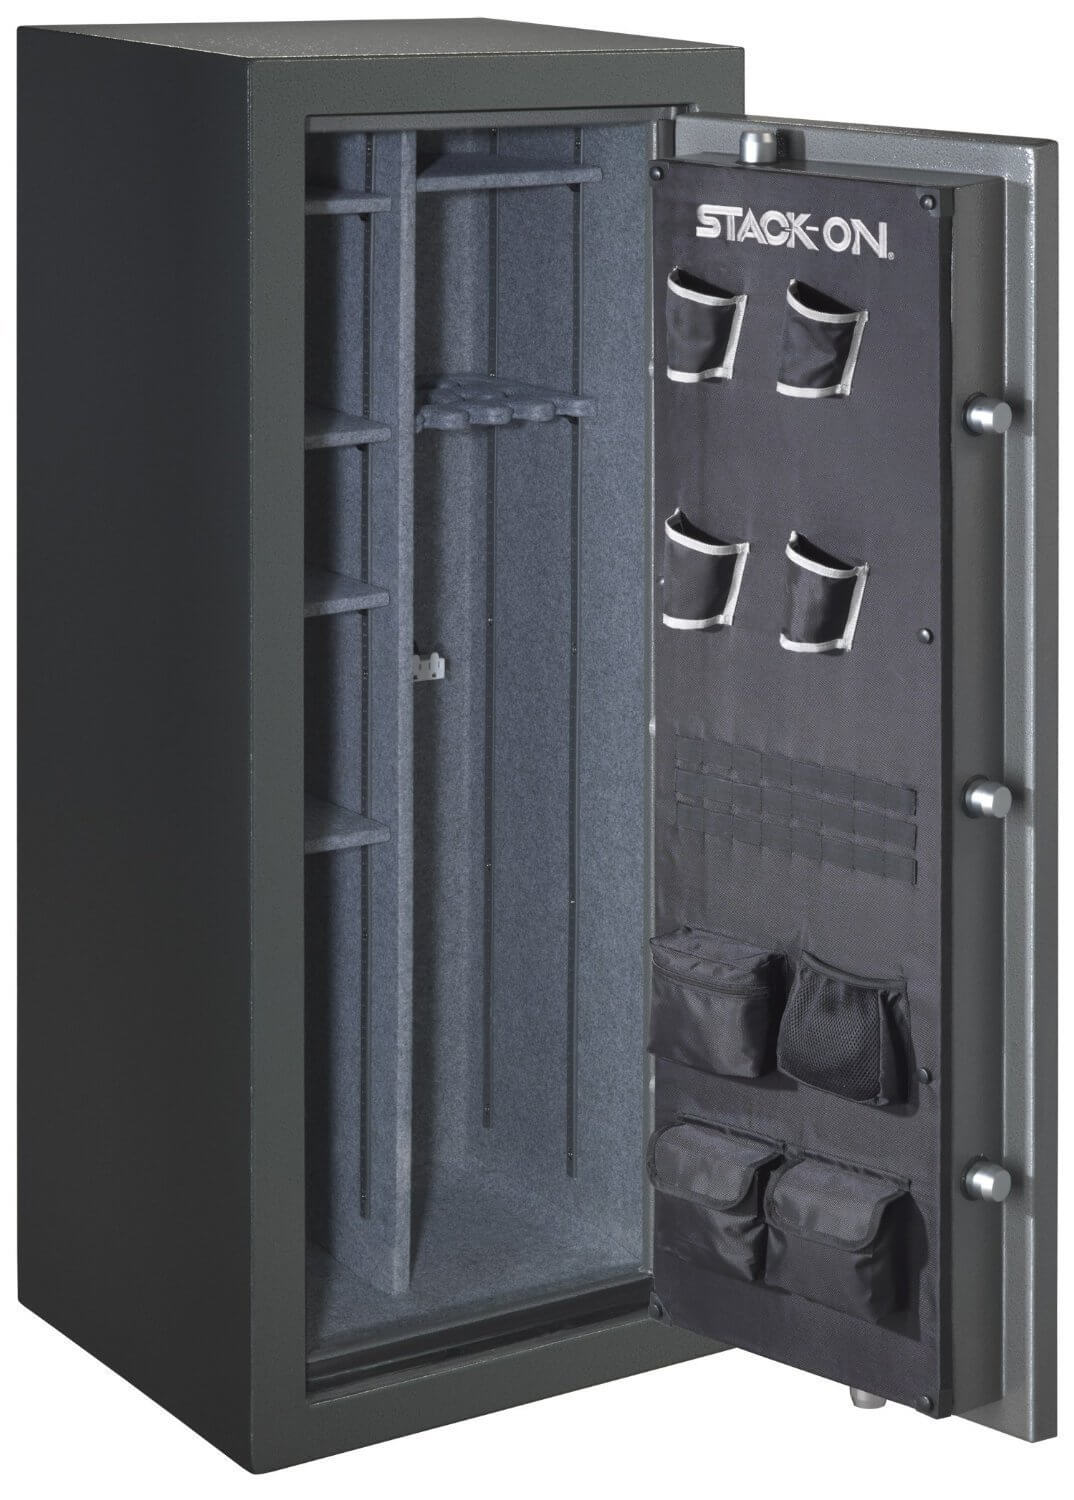 Stack-On TD-24-GP-E-S Total Defense 22-24 Gun Safe with Electronic Lock